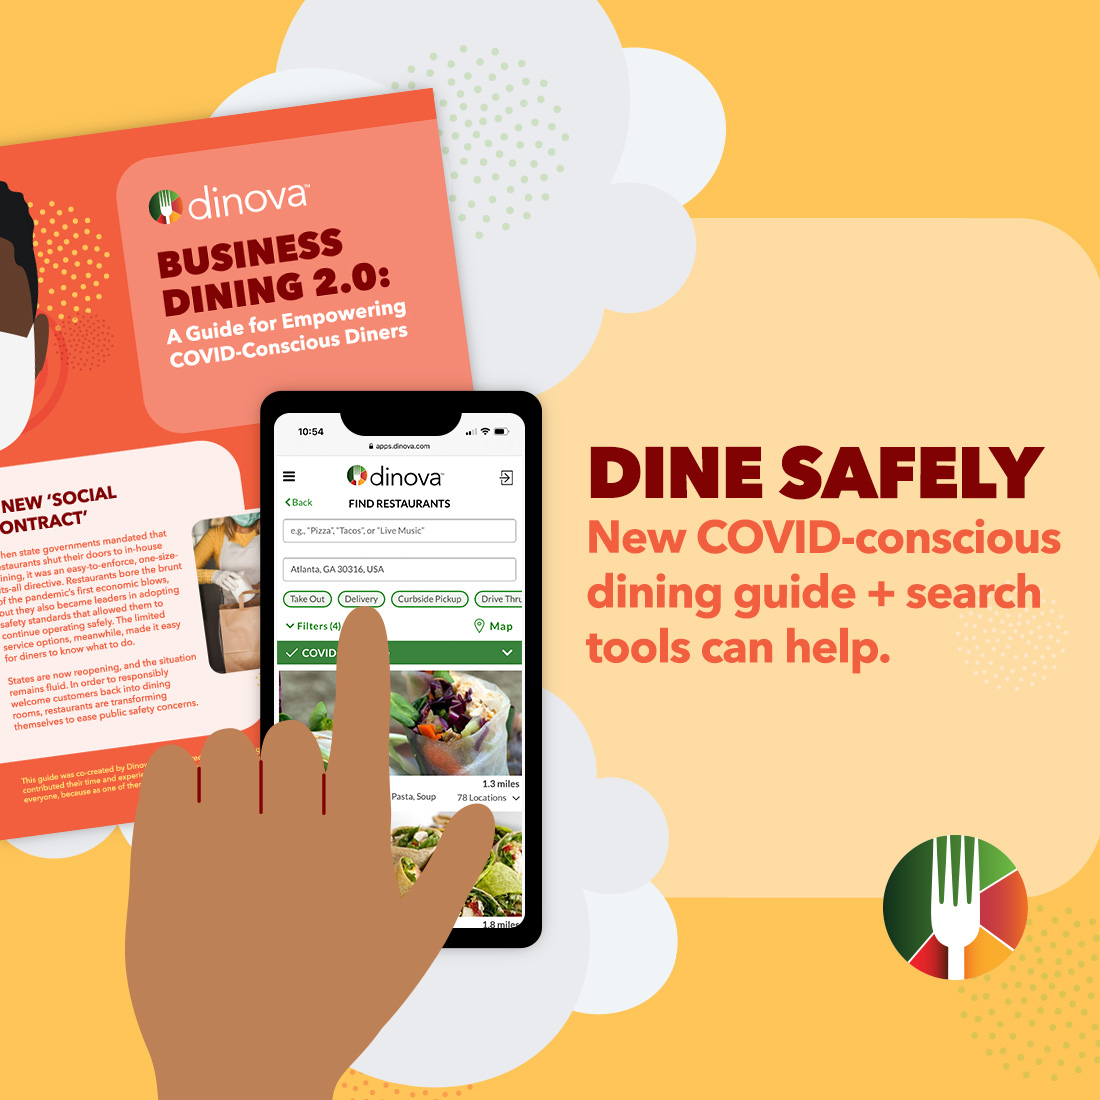 drawing of safe dining guide and dinova mobile app